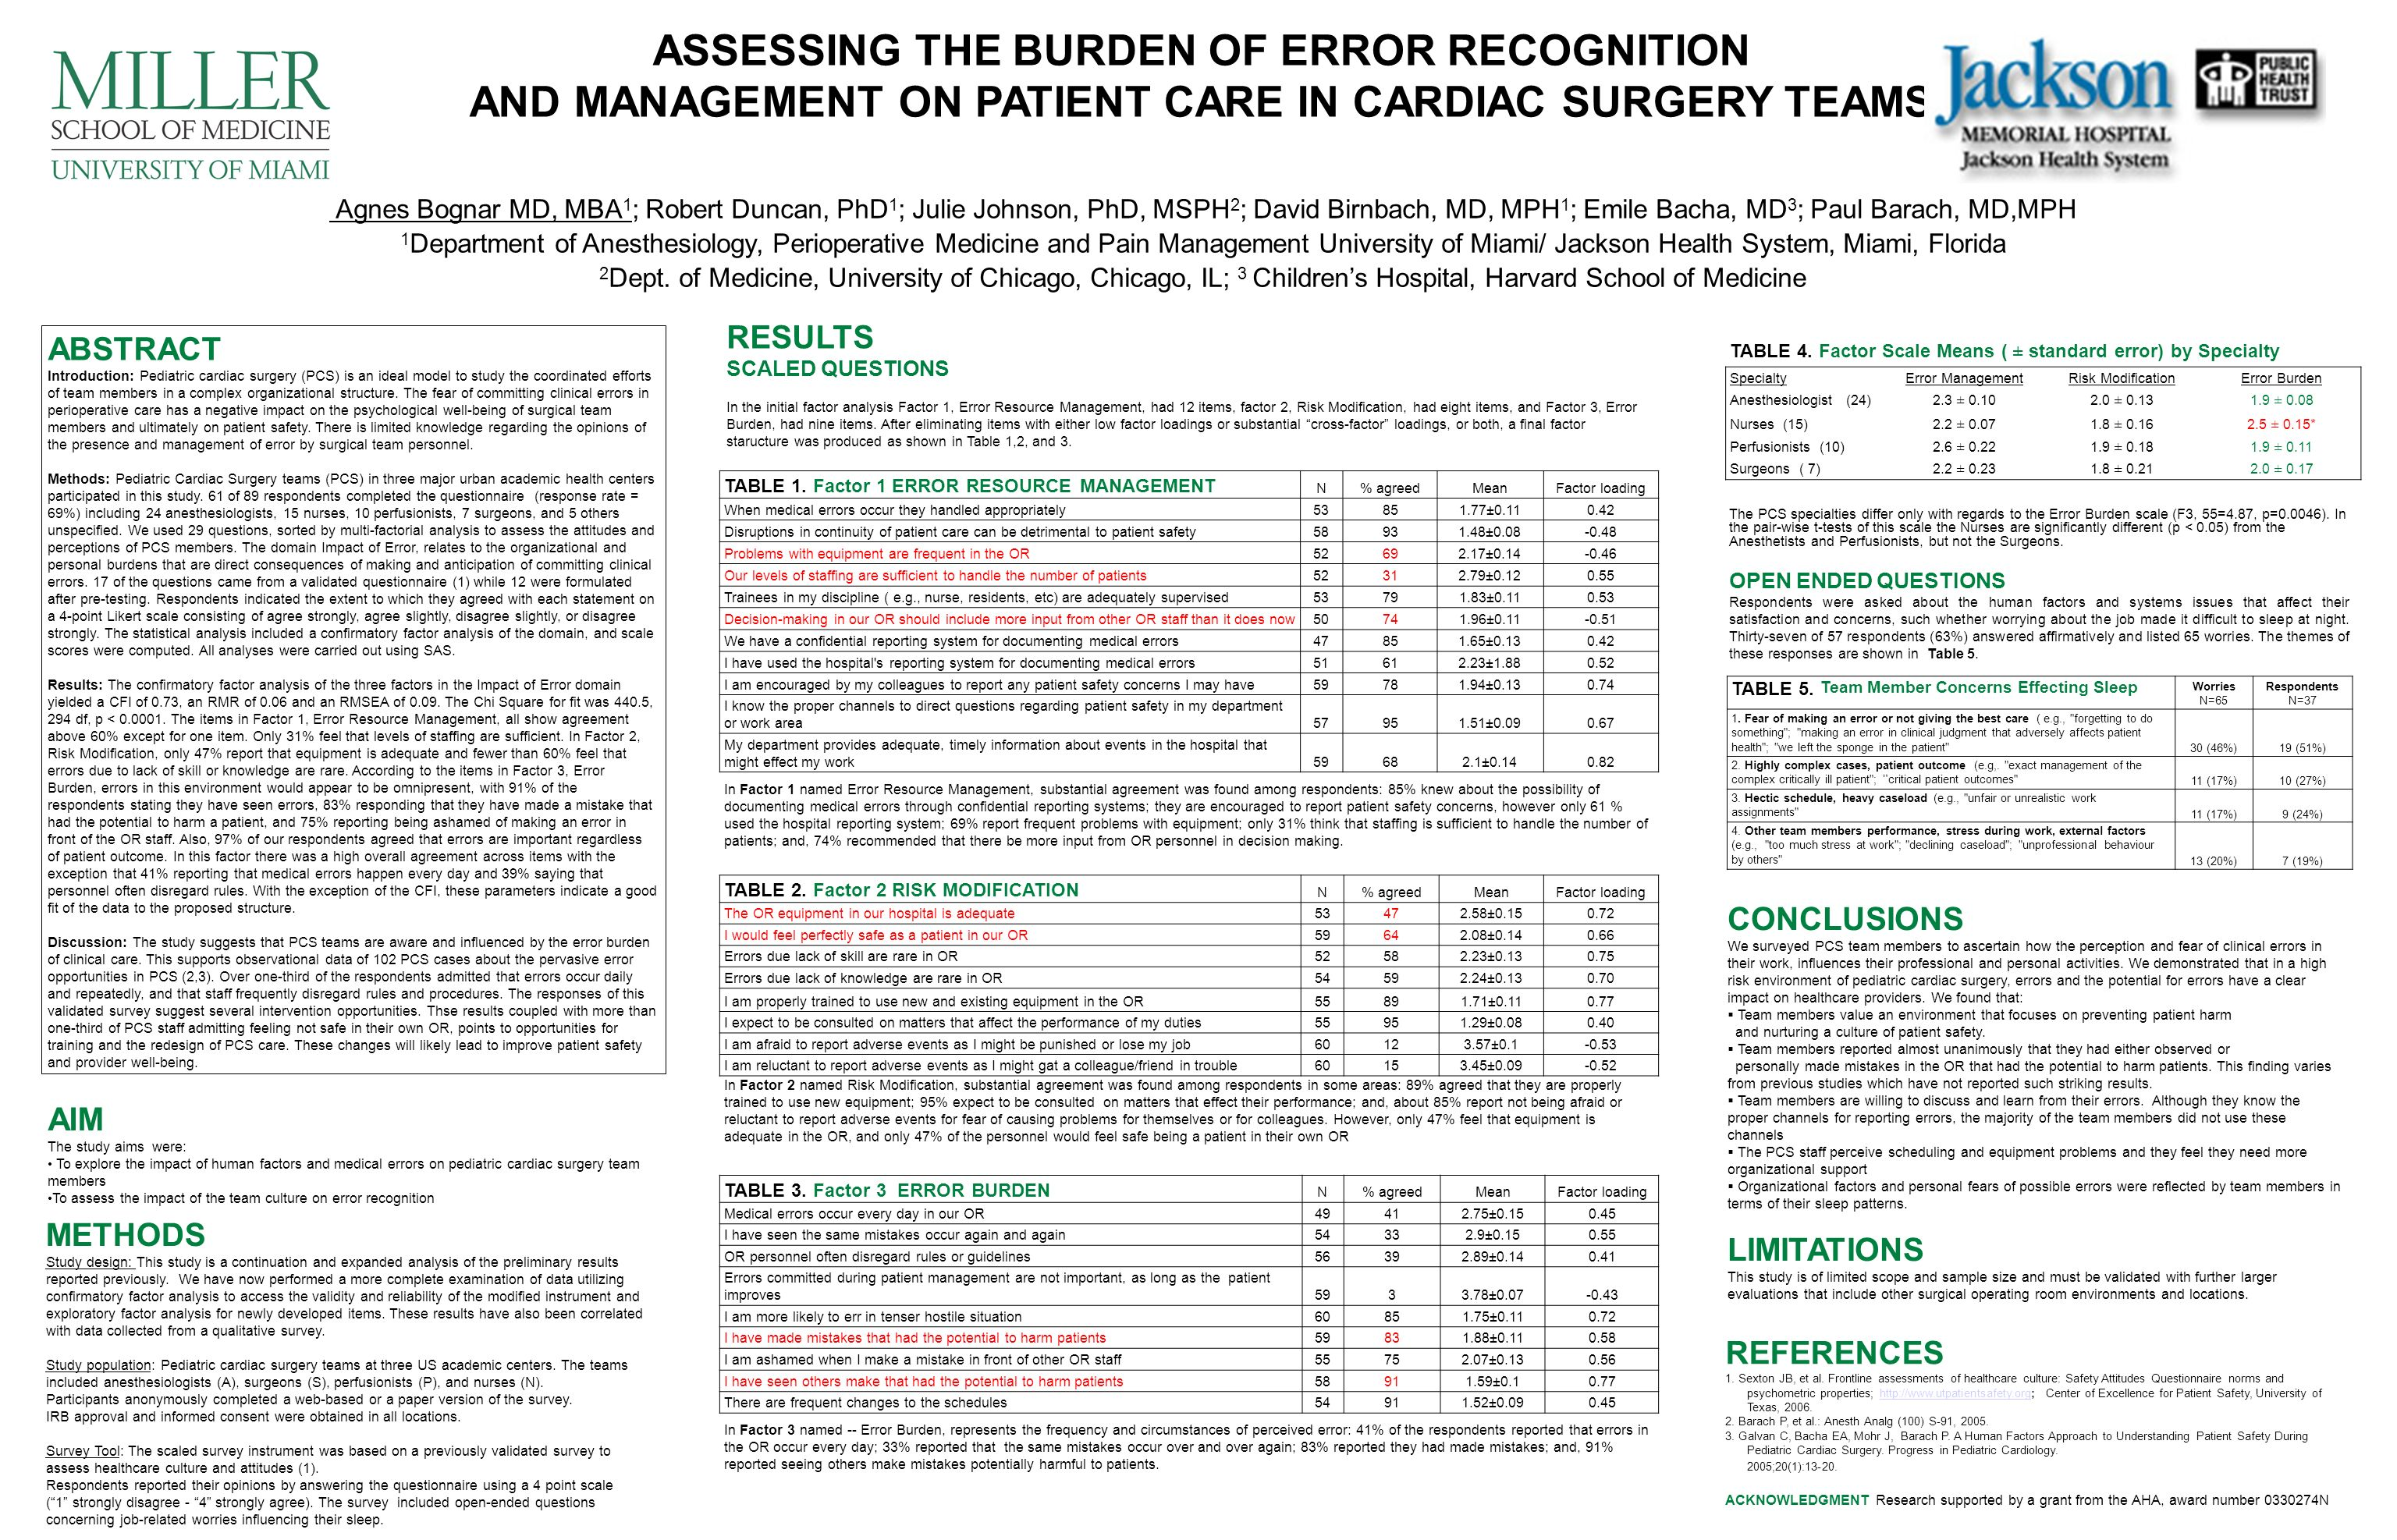 ASSESSING THE BURDEN OF ERROR RECOGNITION AND MANAGEMENT ON PATIENT CARE IN CARDIAC SURGERY TEAMS Agnes Bognar MD, MBA 1 ; Robert Duncan, PhD 1 ; Julie Johnson, PhD, MSPH 2 ; David Birnbach, MD, MPH 1 ; Emile Bacha, MD 3 ; Paul Barach, MD,MPH 1 Department of Anesthesiology, Perioperative Medicine and Pain Management University of Miami/ Jackson Health System, Miami, Florida 2 Dept.